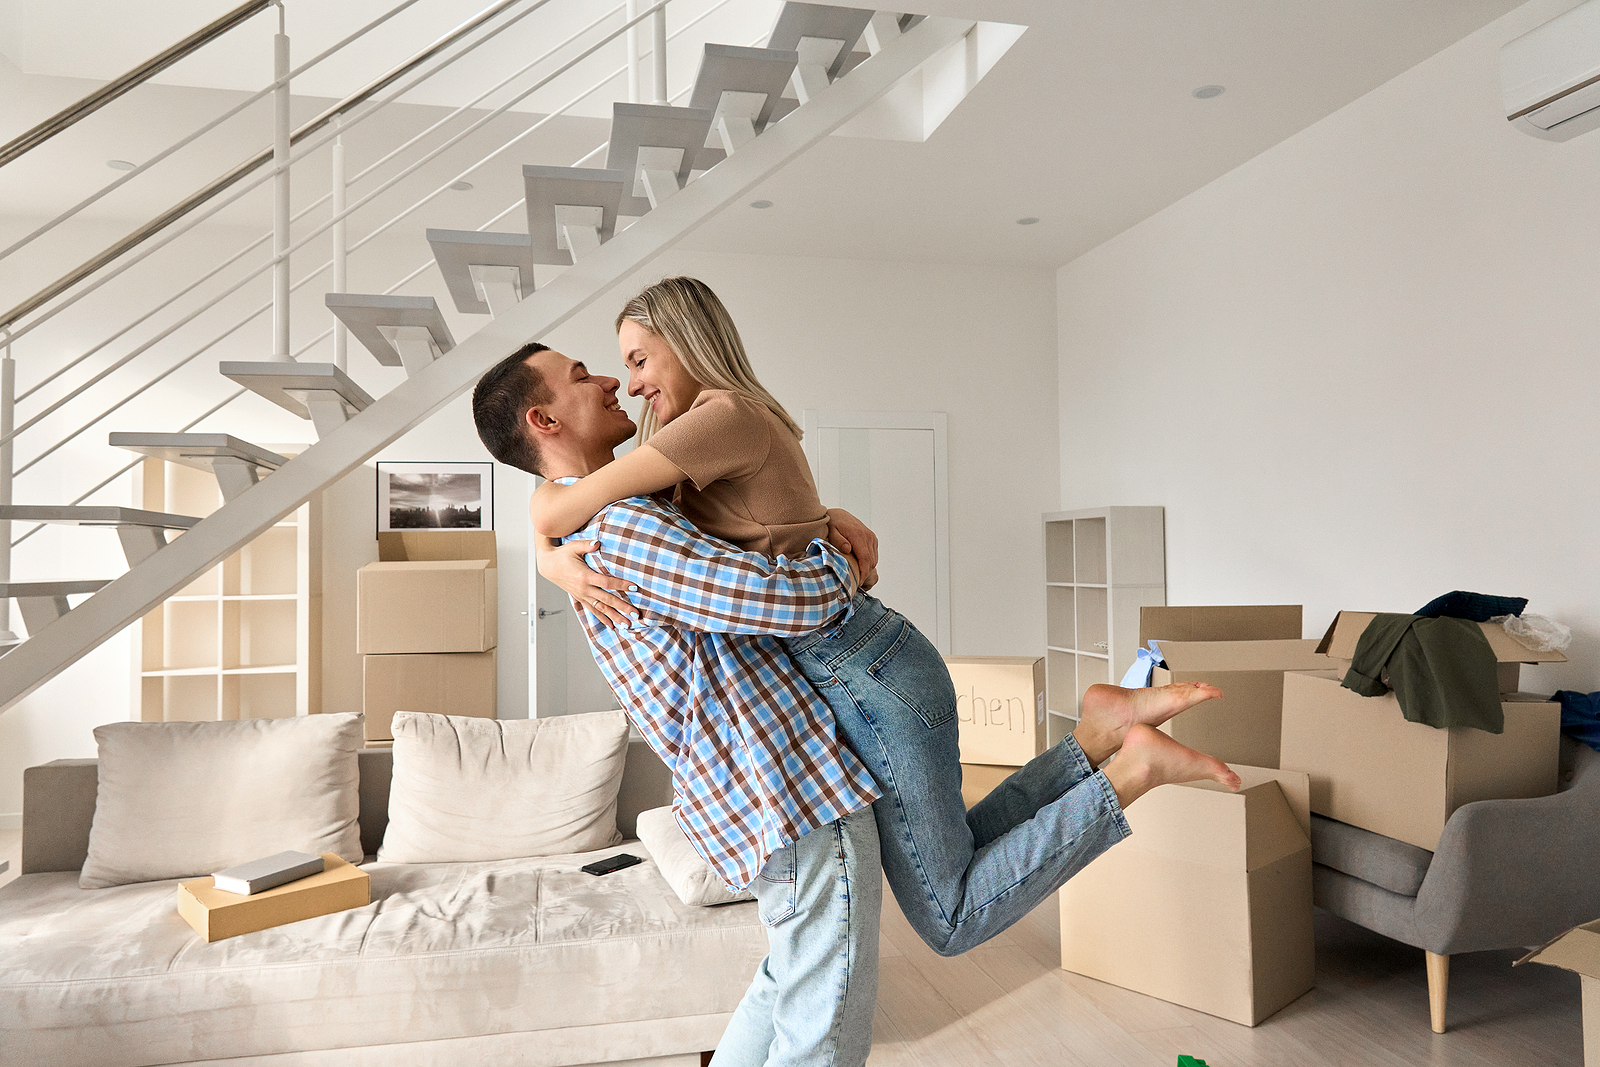 a happy couple surrounded by boxes, hug each other on their moving day.